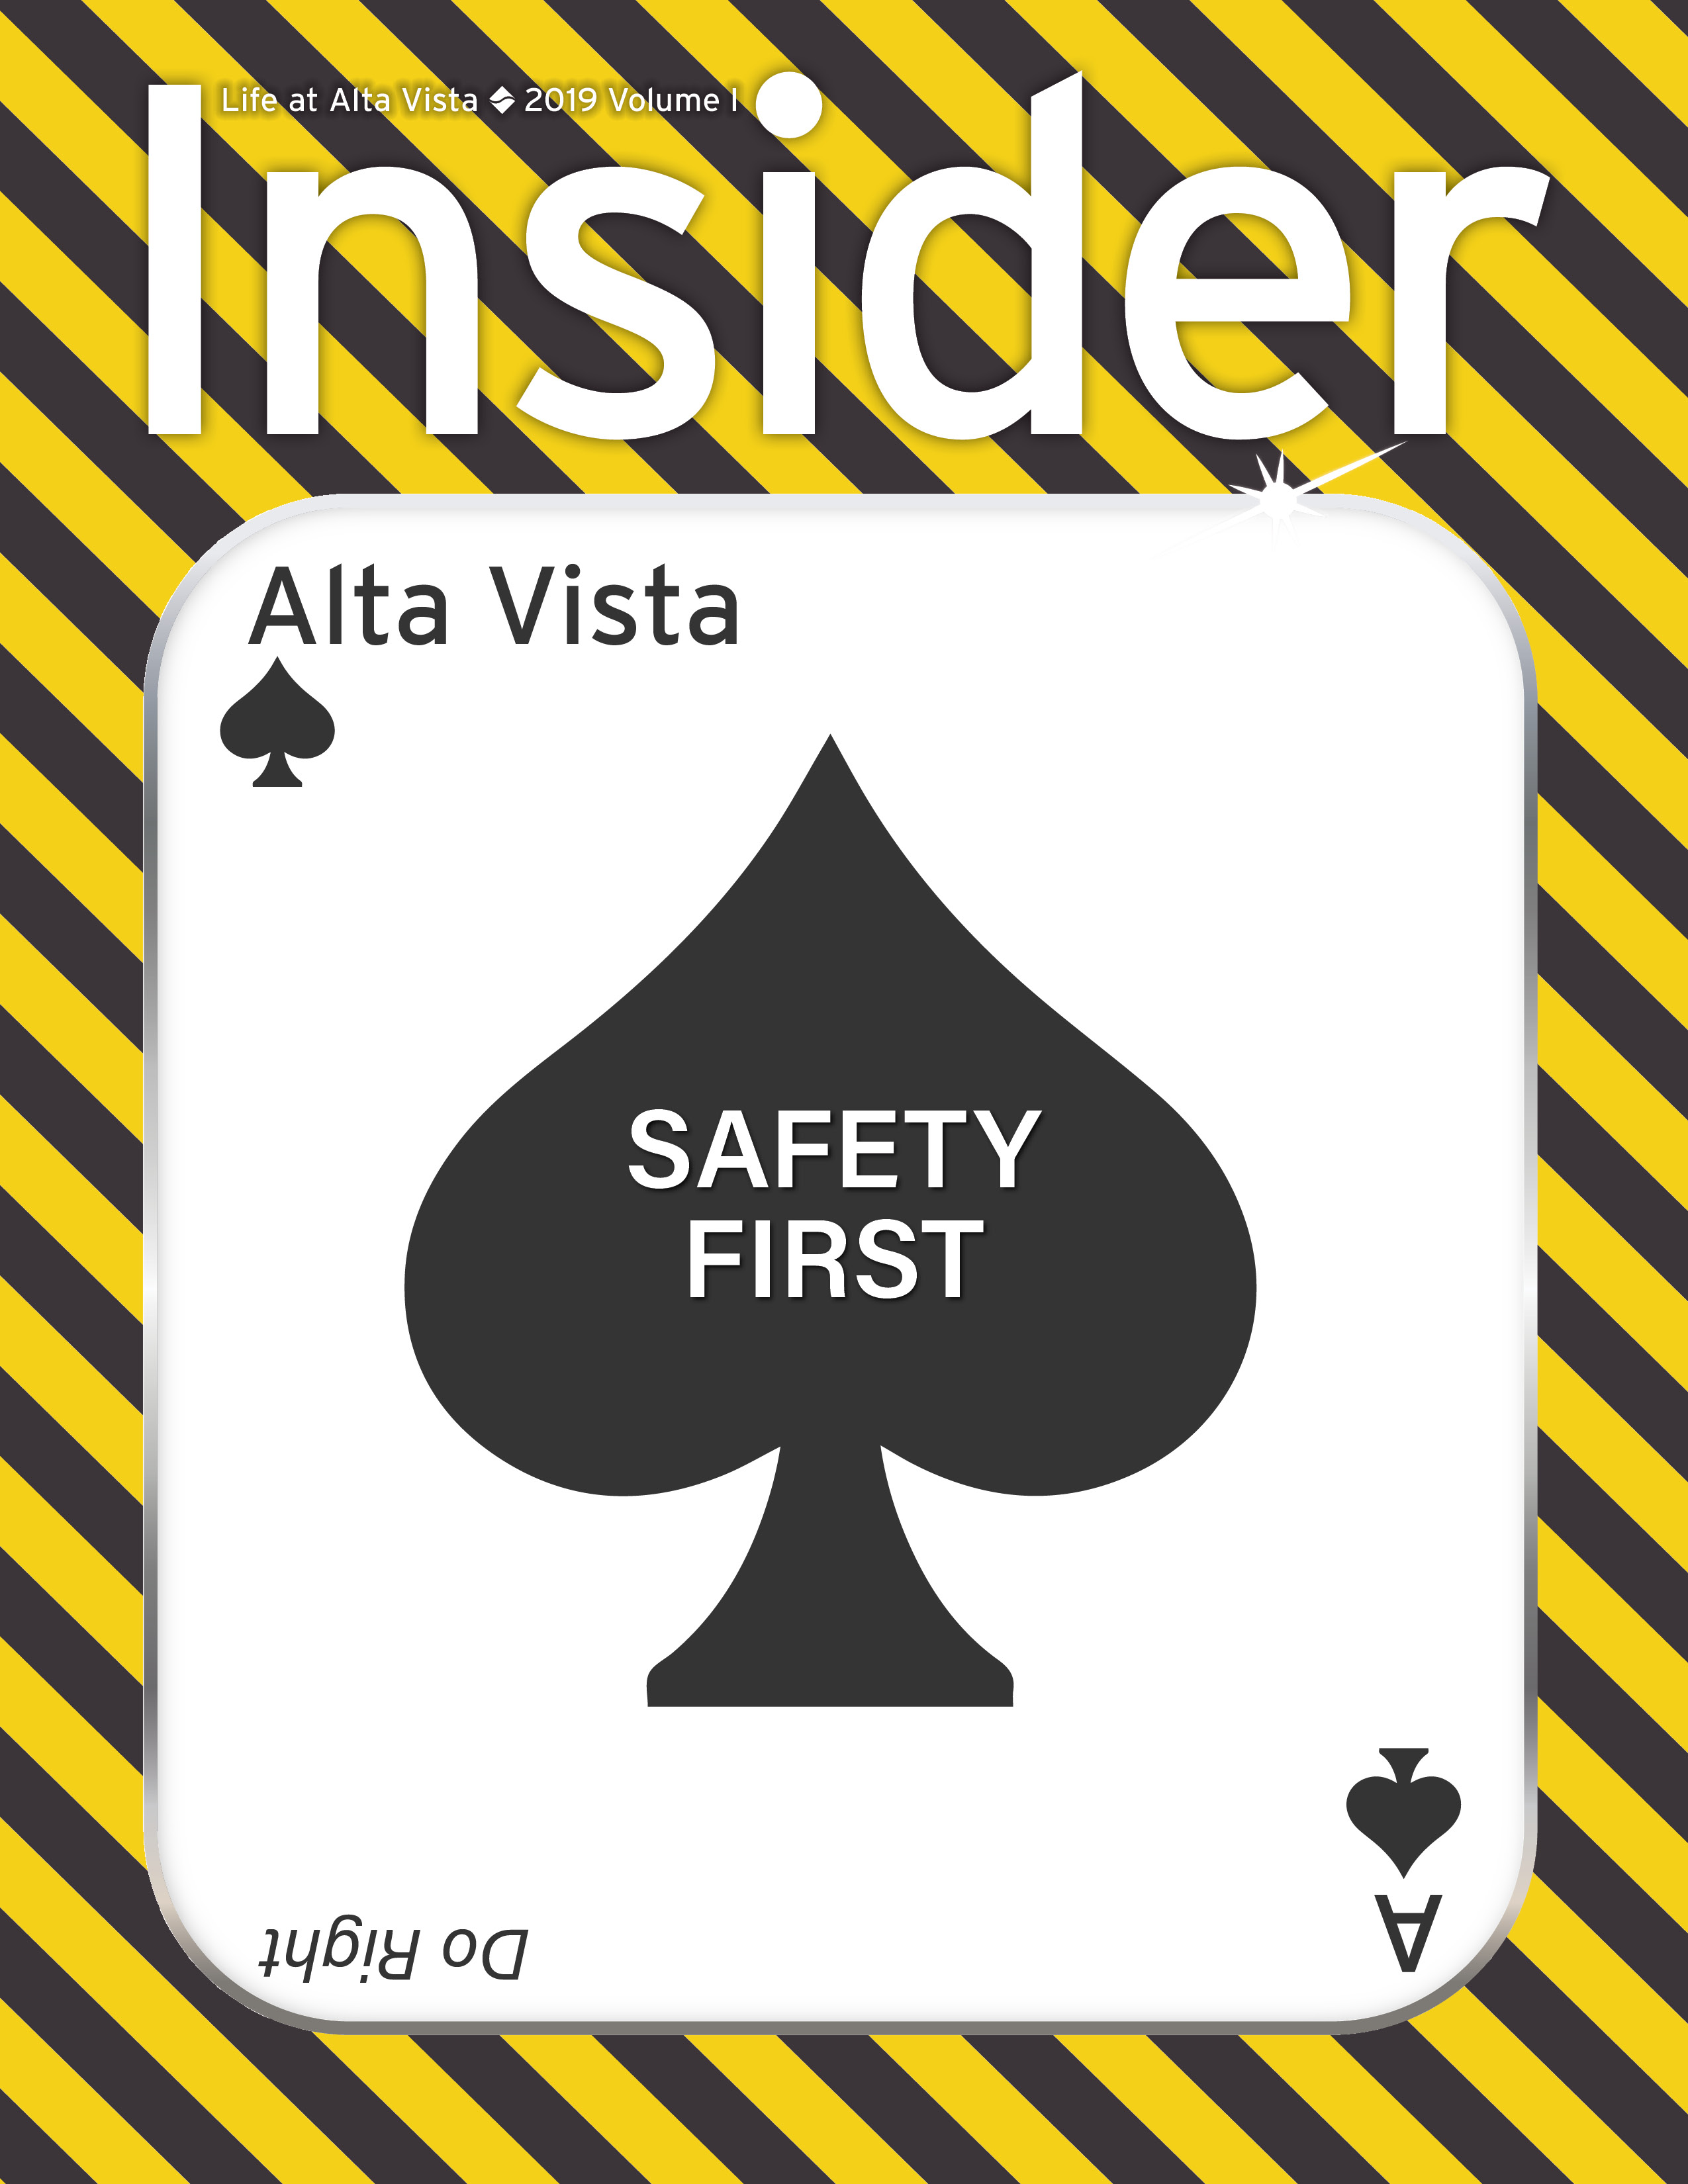 Insider 2019 Volume 1 edition: Safety (Click to view this issue)